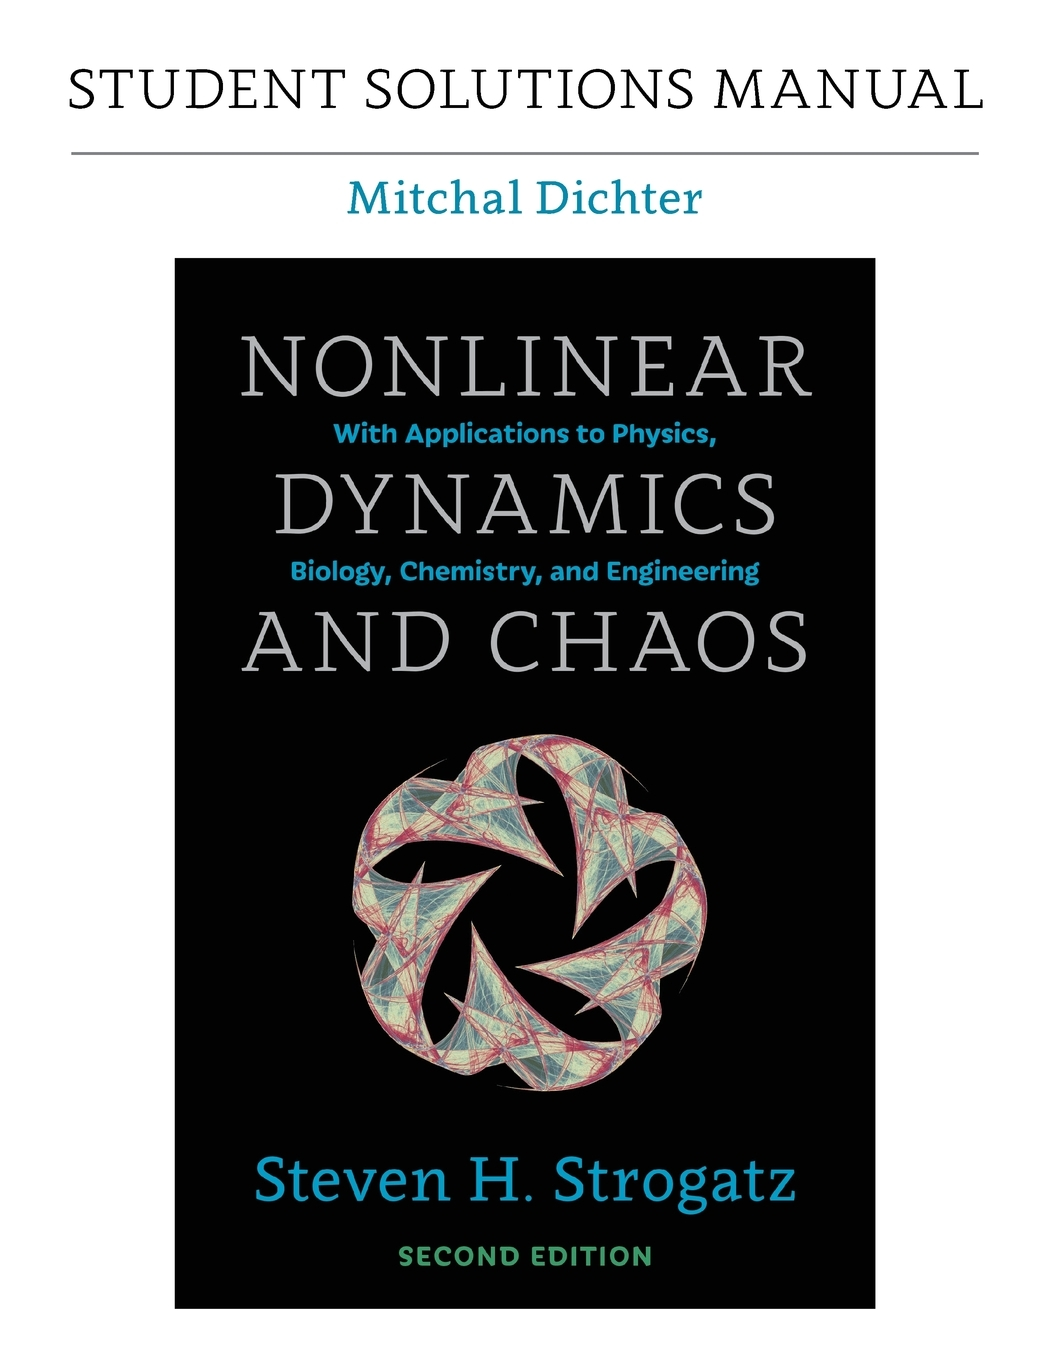 student solutions manual nonlinear dynamics and chaos mitchal dichter pdf